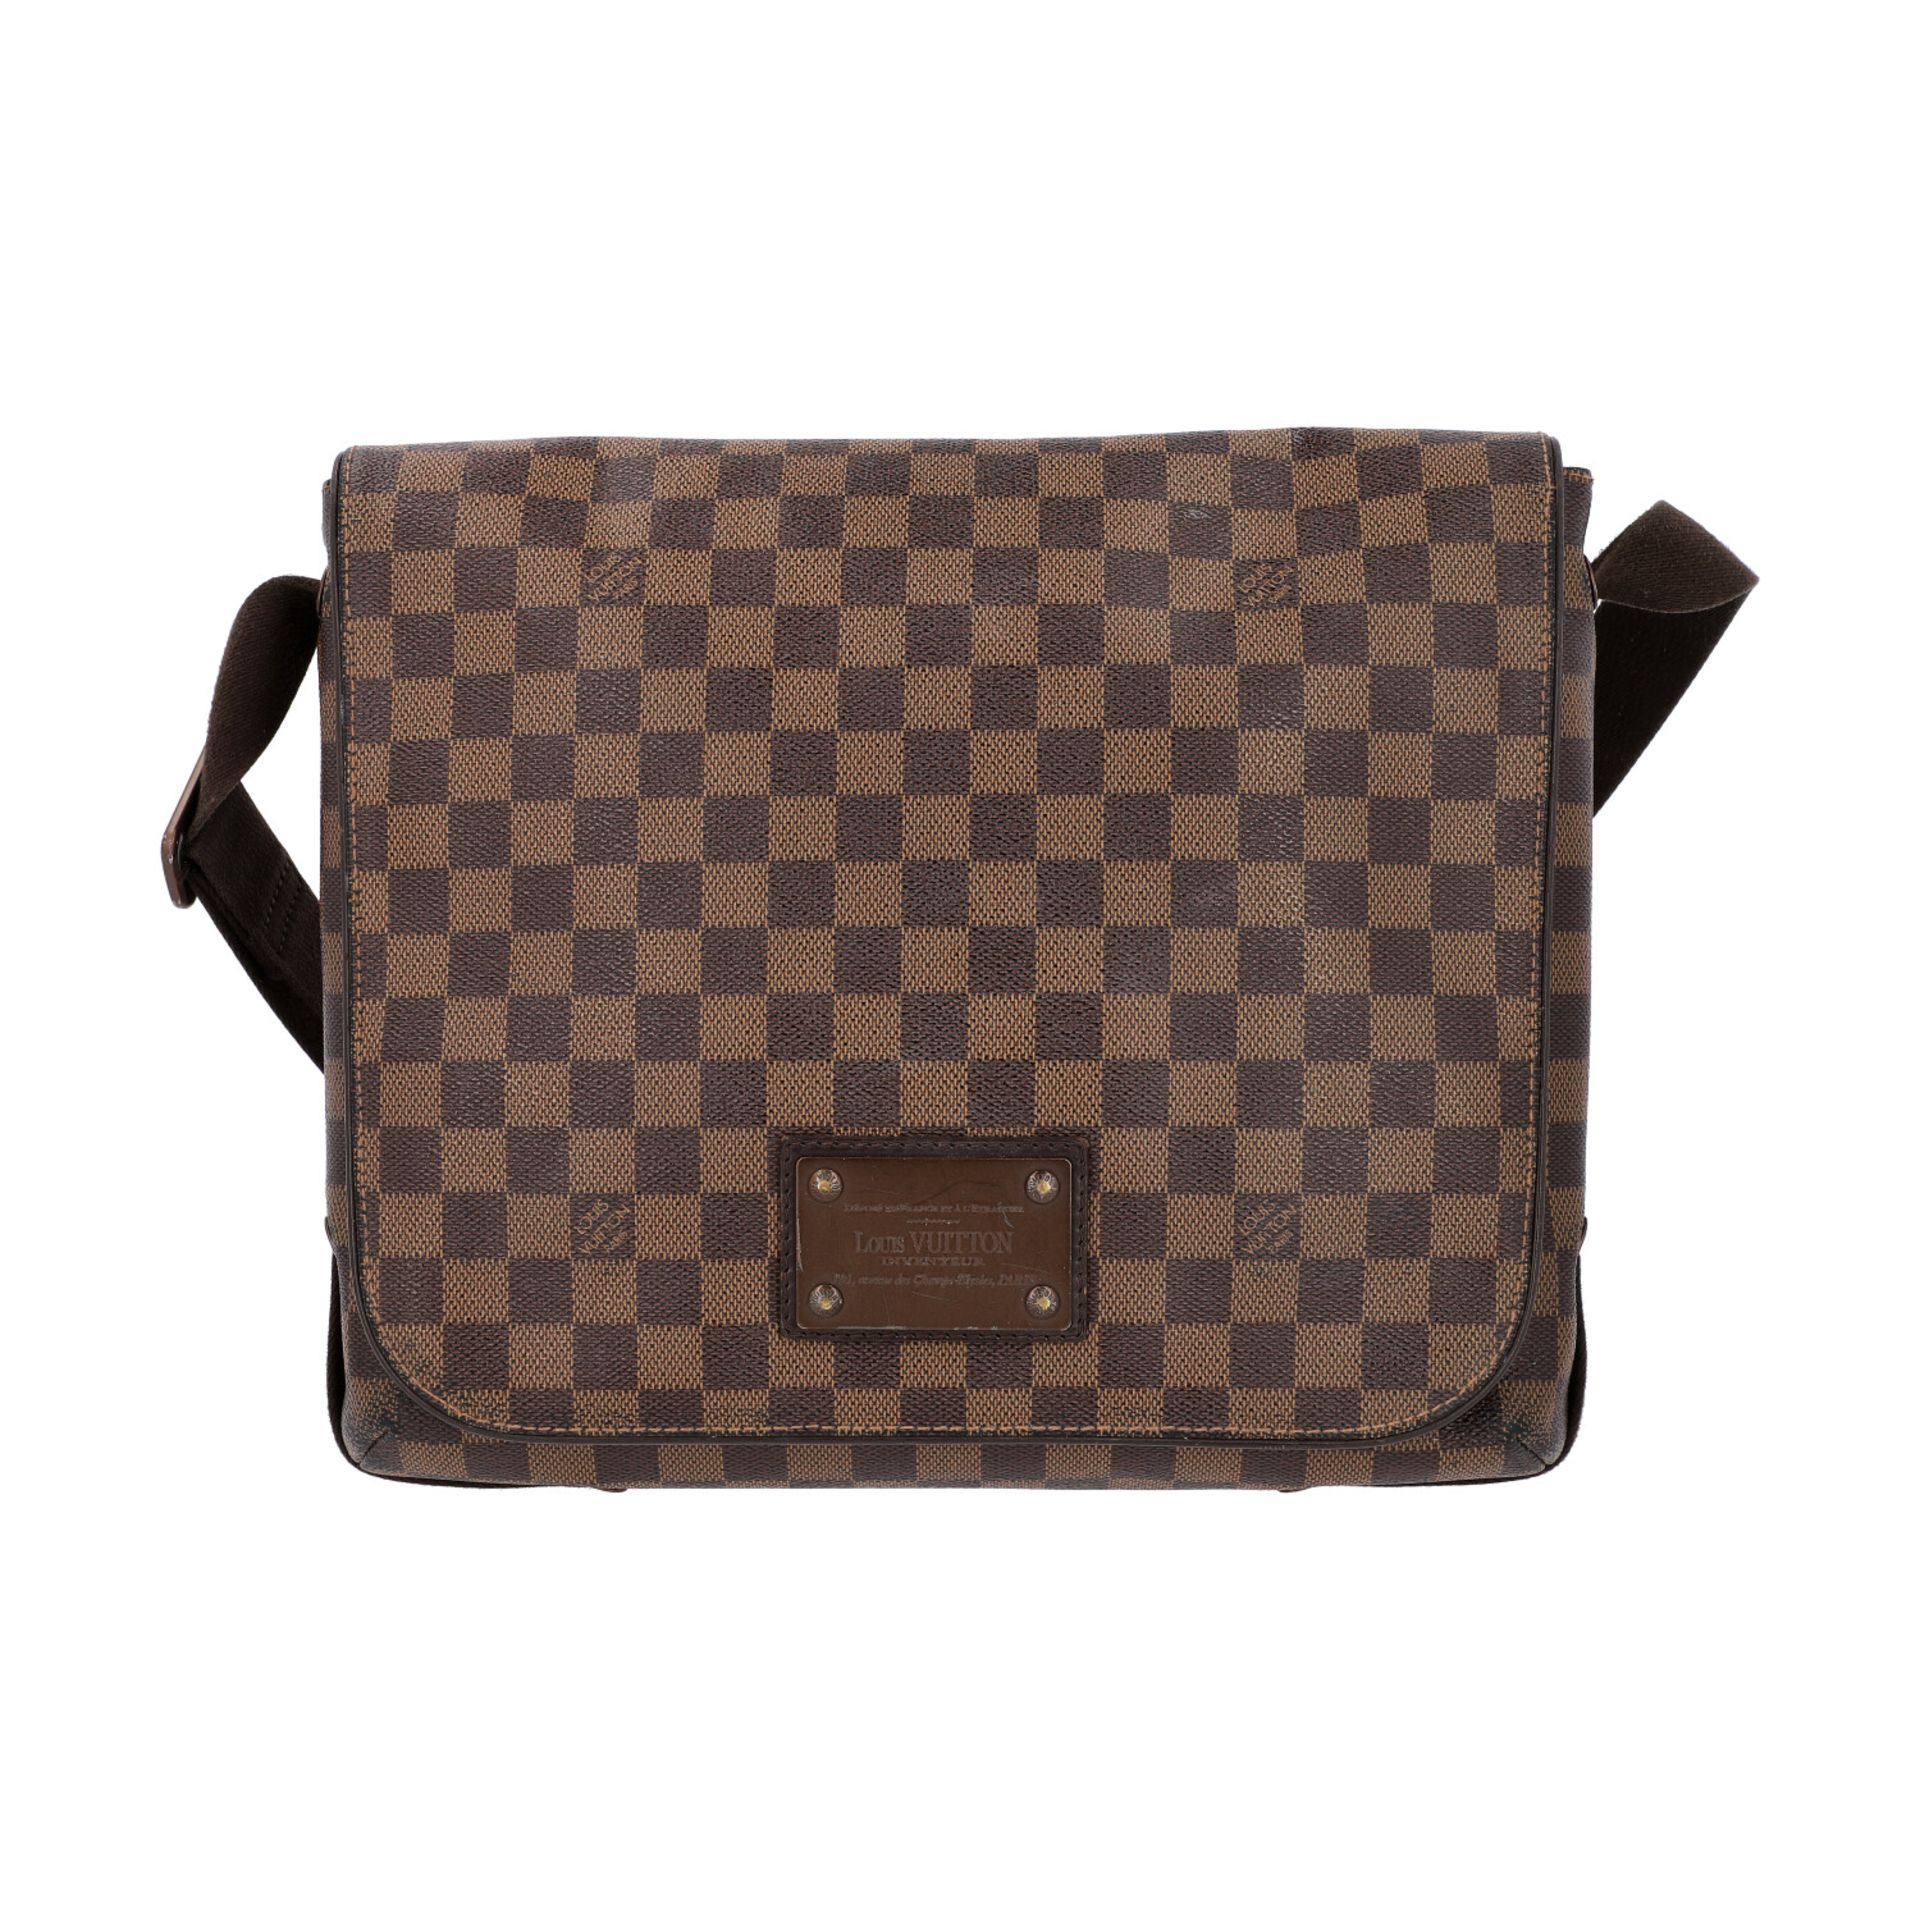 "LOUIS VUITTON Messenger Bag, ""BROOKLYN MM"", Koll. 2010.Damier Ebene Serie mit textilem"